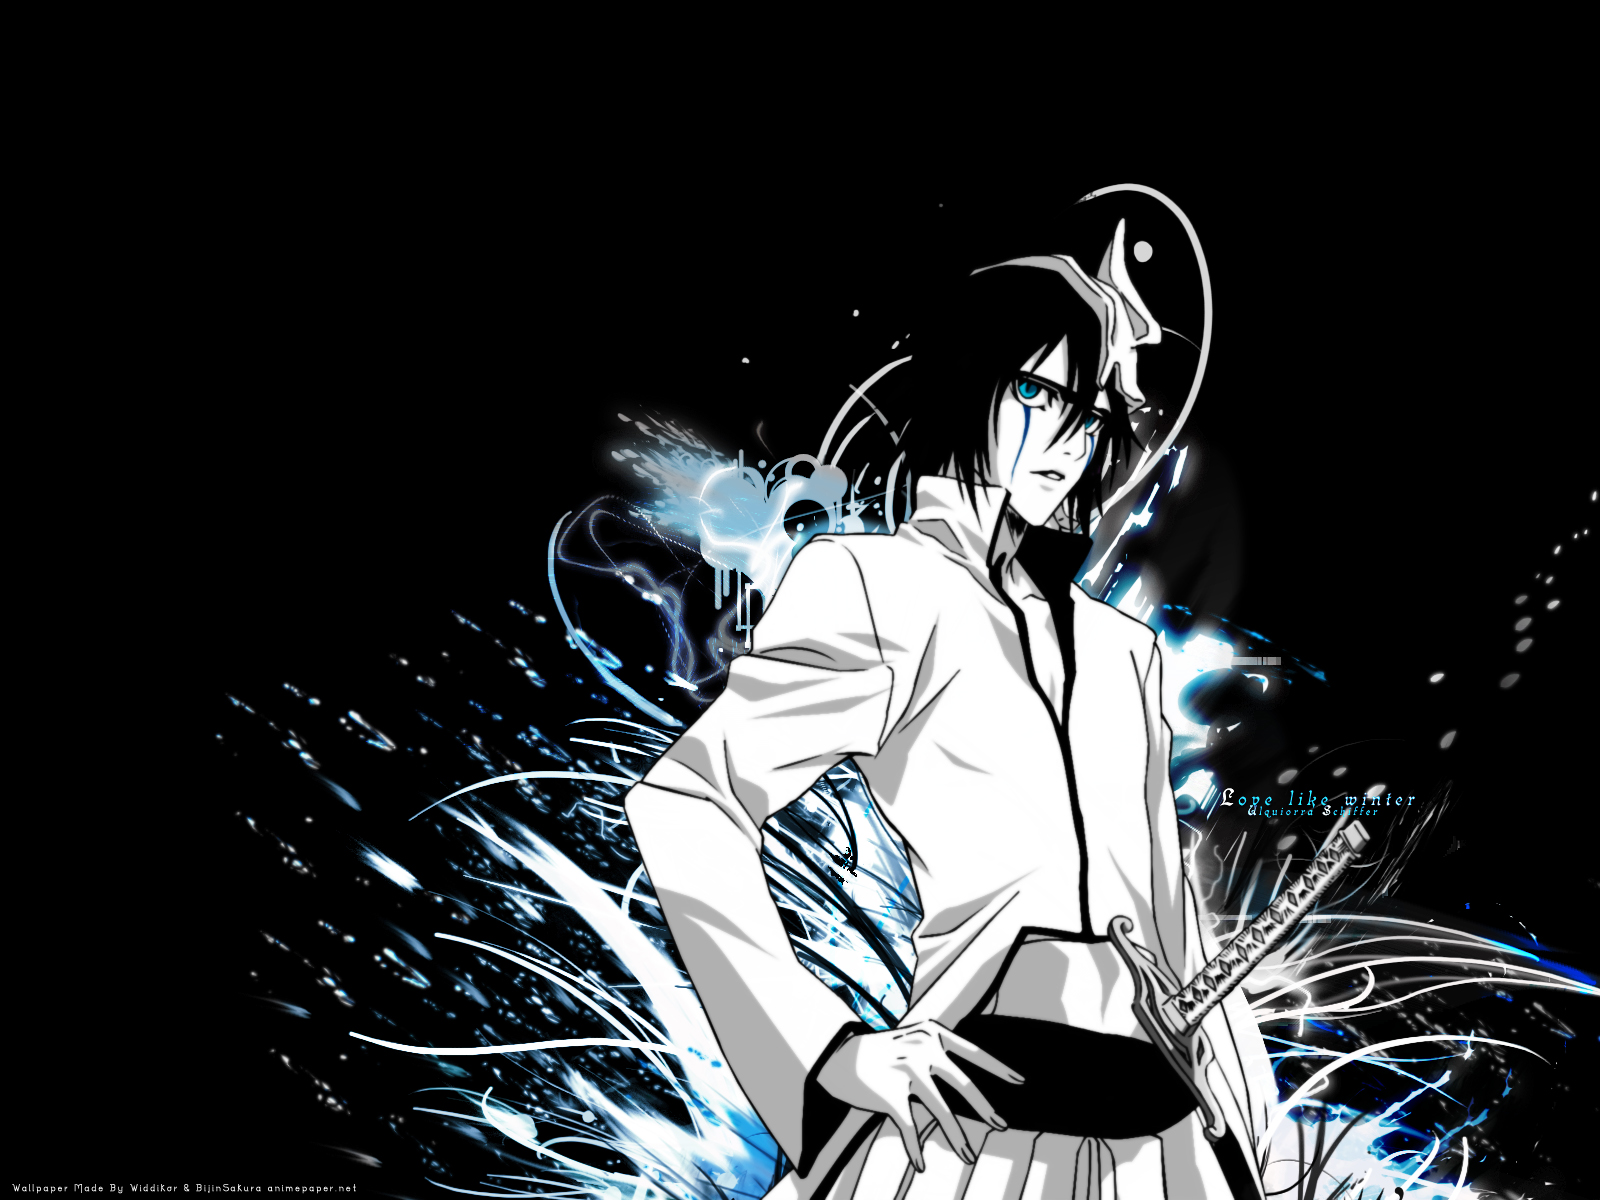 2bpblogspot CcpvQWa4OWA Tv6QerKh8nI Bleach Wallpaper Espada